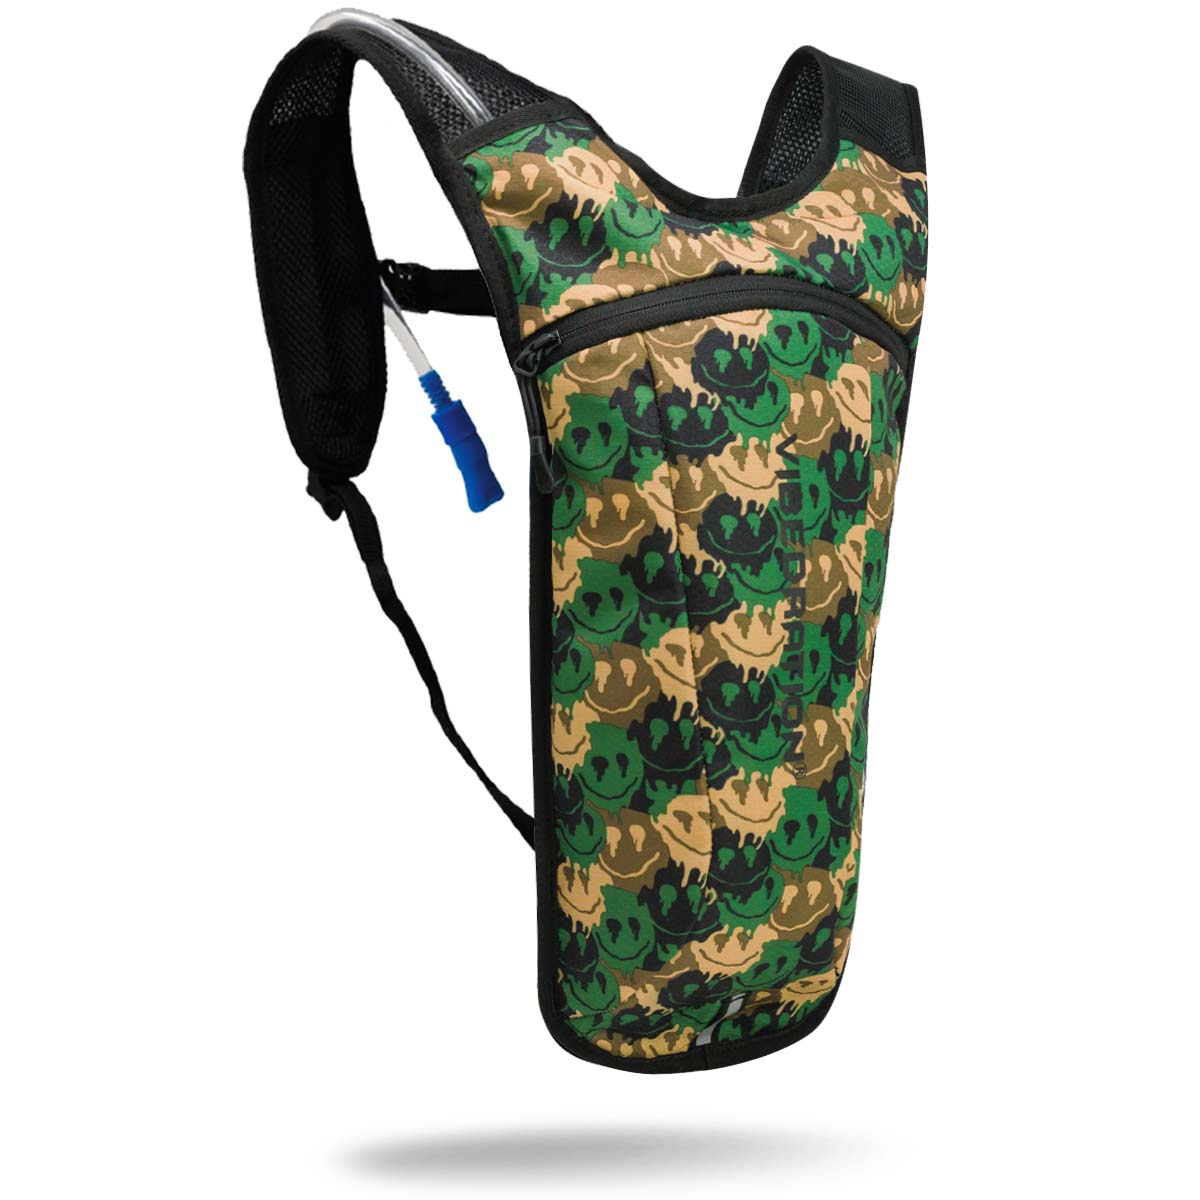 Camo water backpack with two liter hydration bag